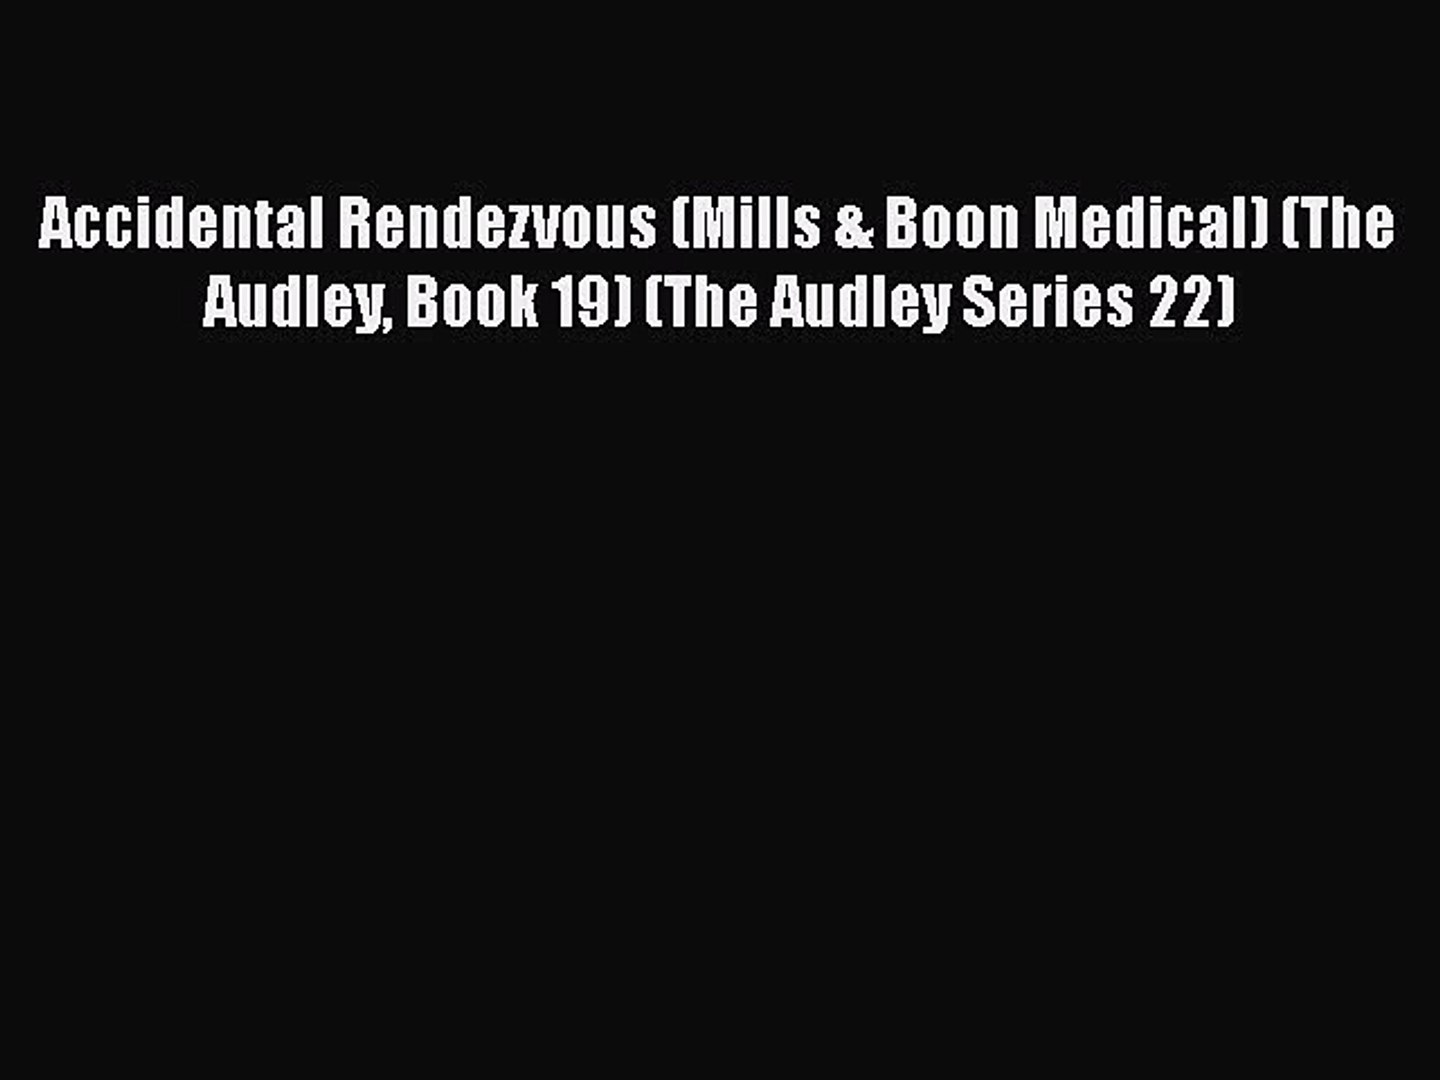 Accidental Rendezvous (Mills & Boon Medical) (The Audley, Book 19) (The Audley Series 22)